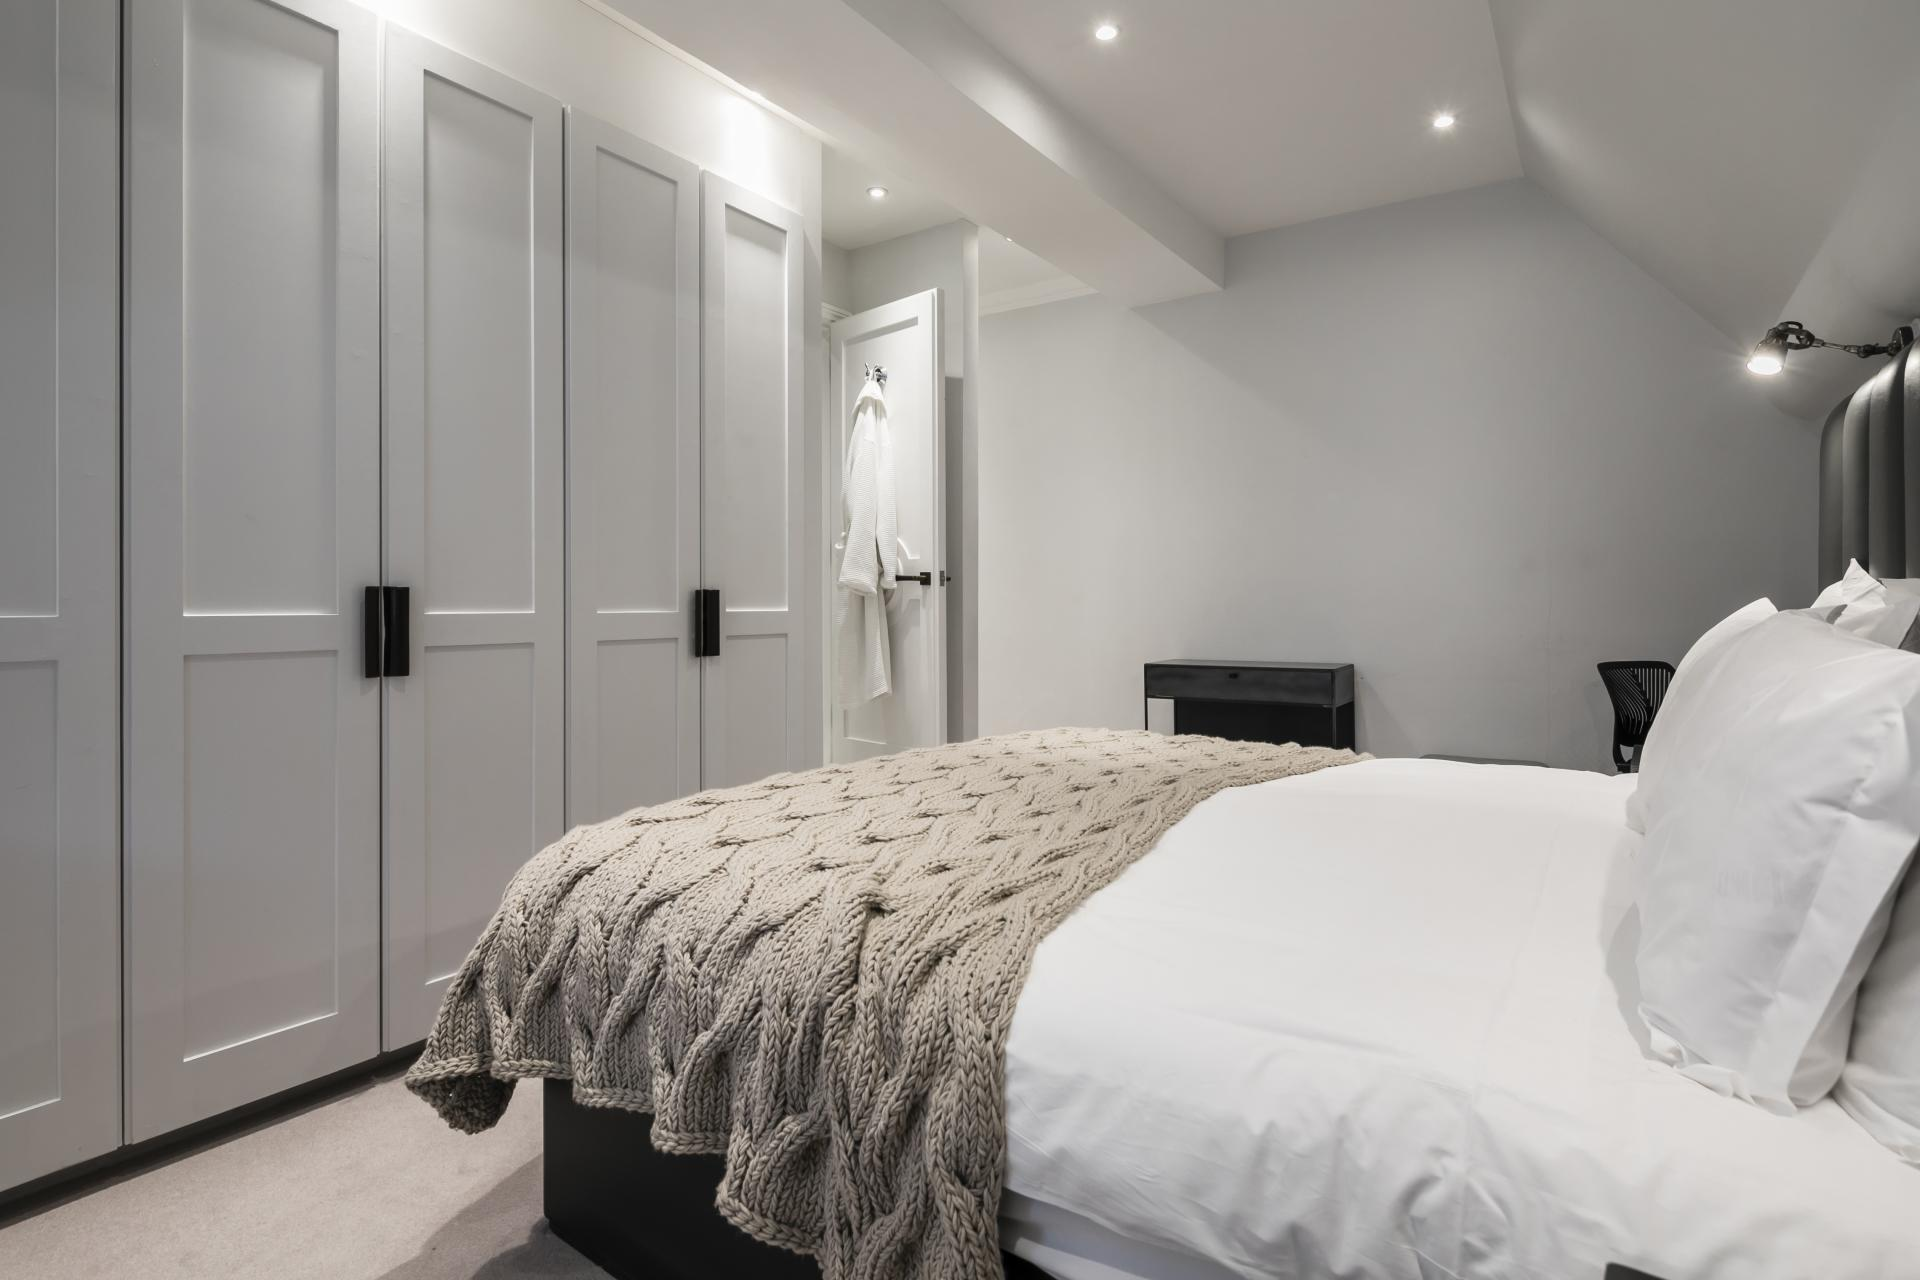 Spacious bedroom at Luxurious Mayfair Apartments, Mayfair, London